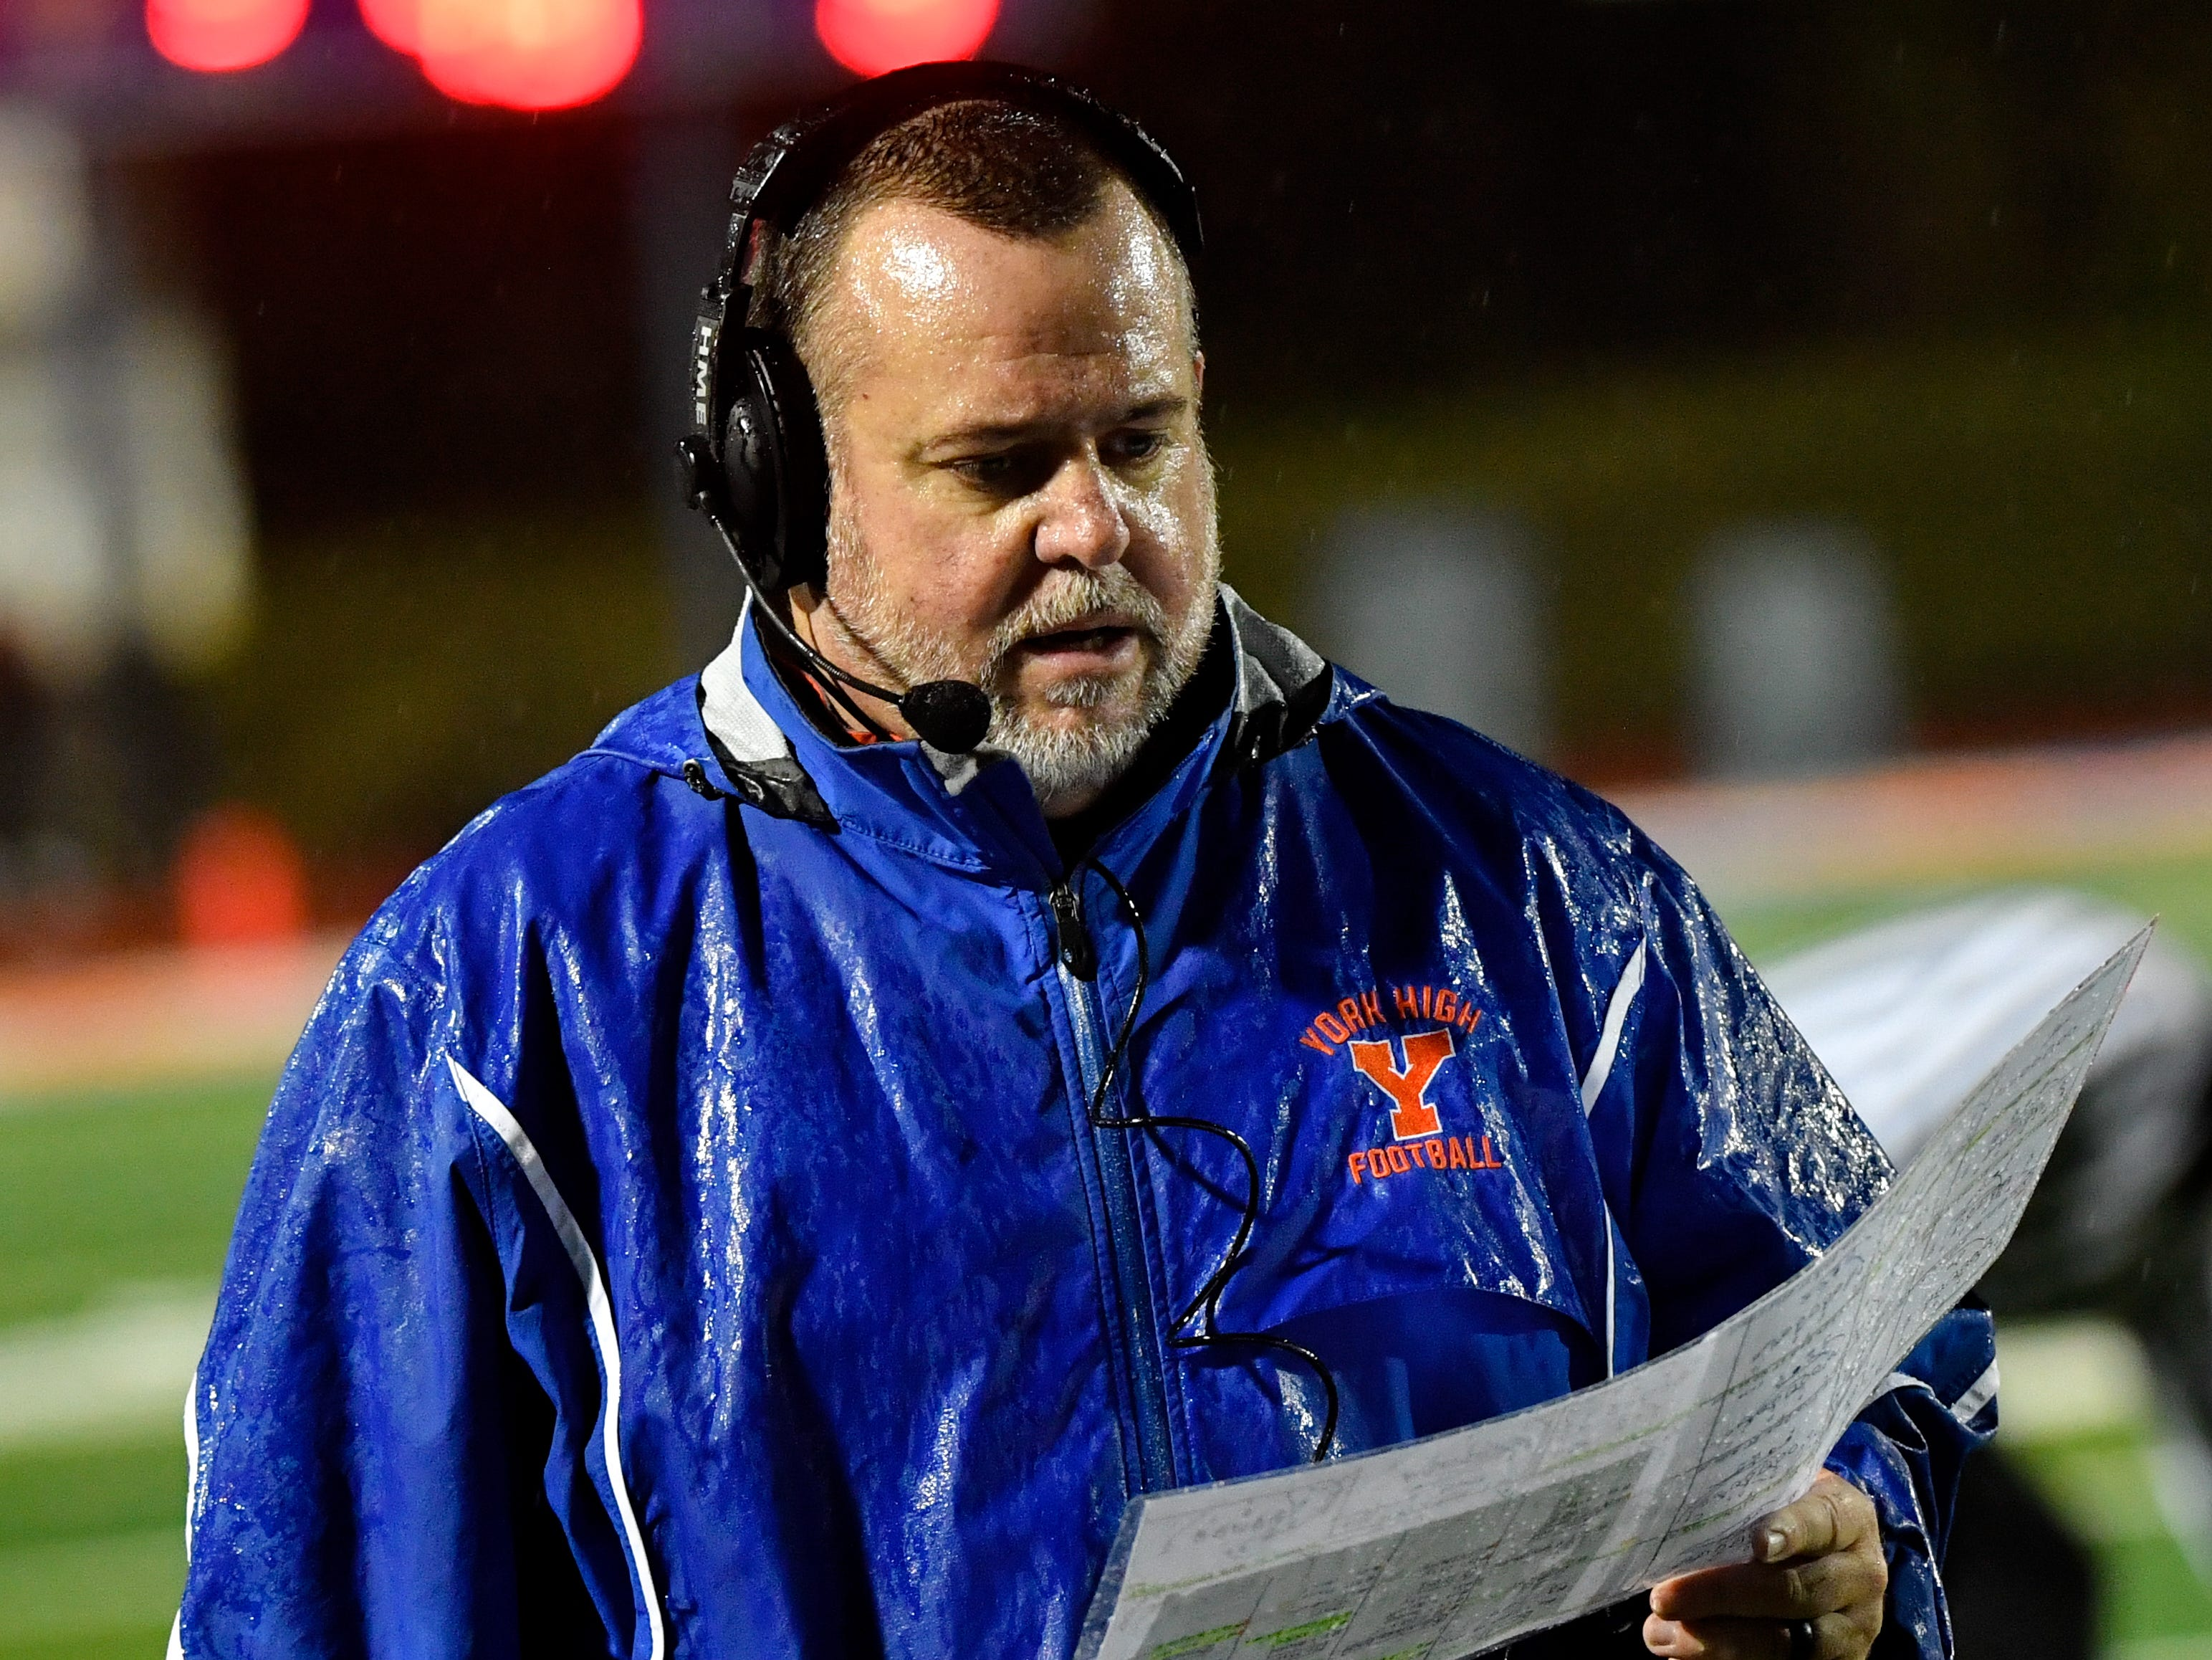 York High coach Russ Stoner decides what play to call next during the YAIAA Division I title game at Smalls Athletic Field, Friday, October 26, 2018. The York High Bearcats defeated the Central York Panthers 54-14.